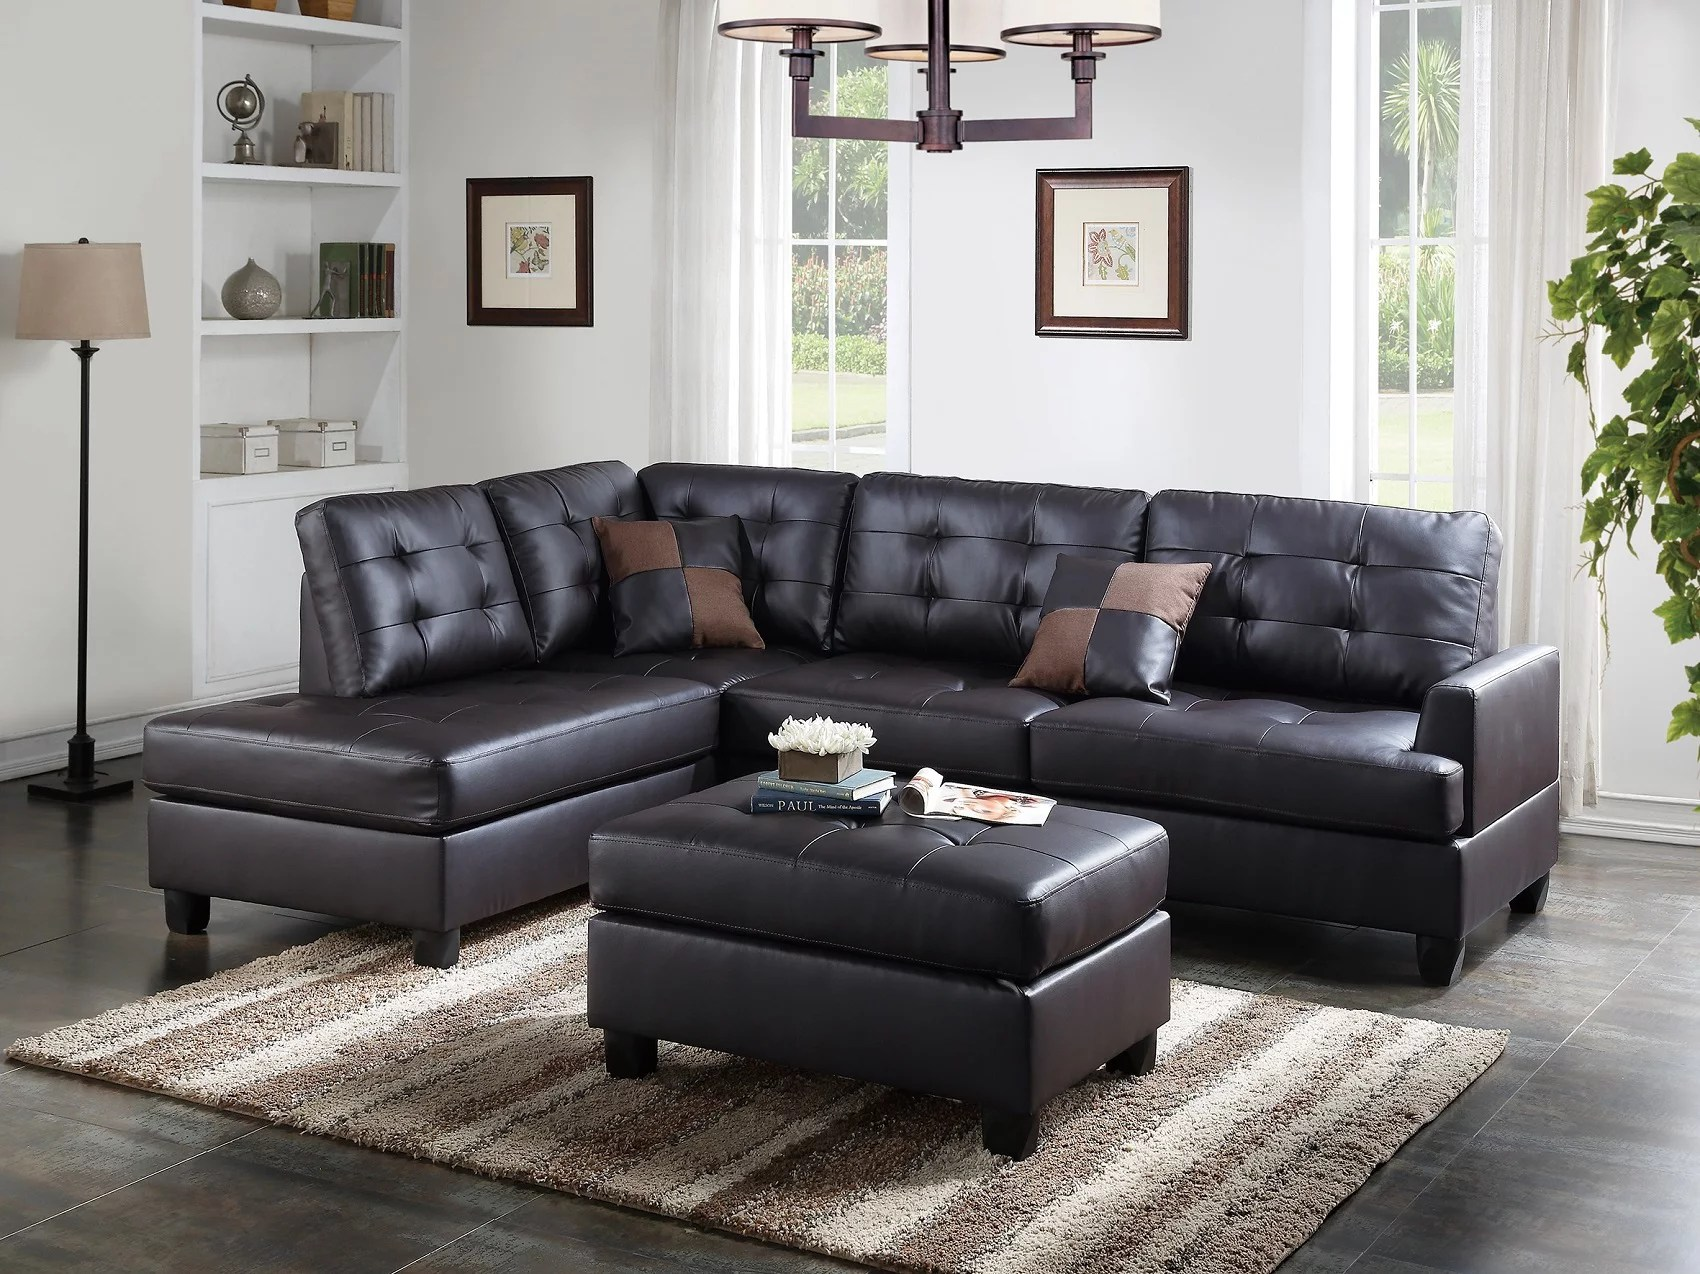 mathew sectional sofa set espresso faux leather sofa chaise ottoman tufted comfort couch living room furniture